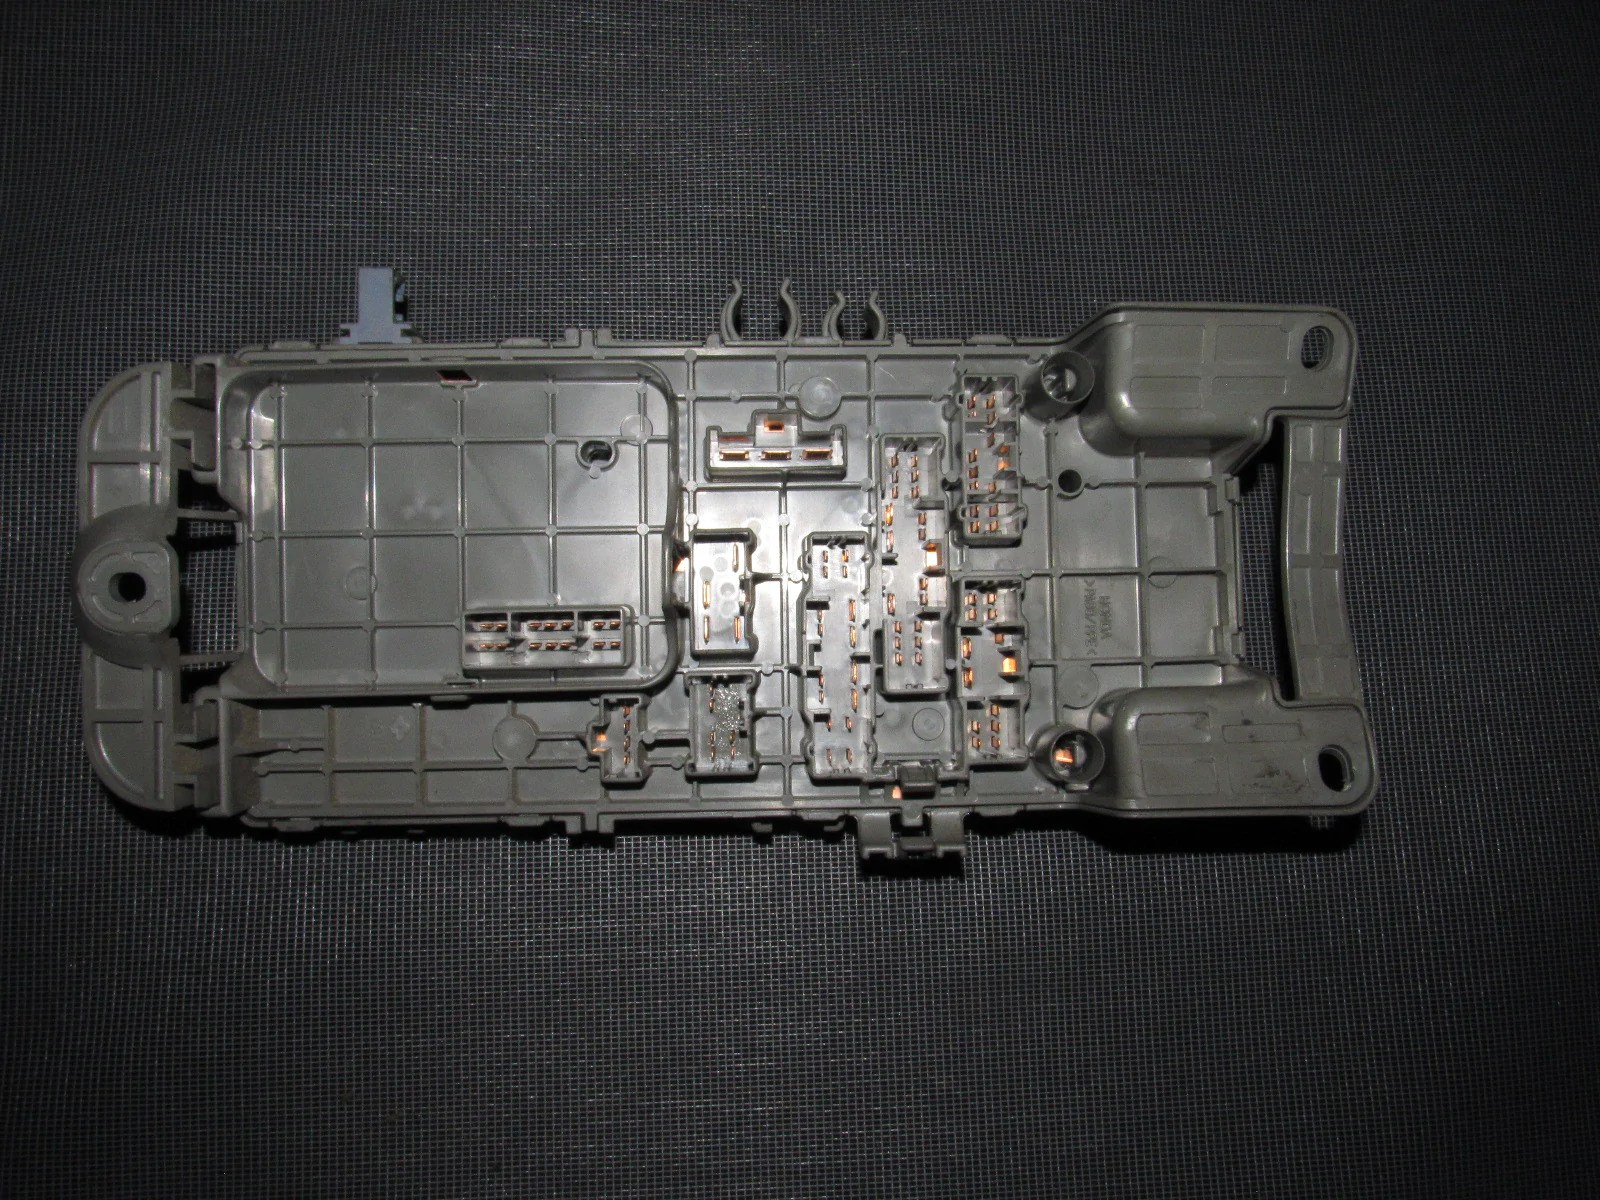 medium resolution of  92 93 94 95 96 honda prelude si h23 oem interior fuse box